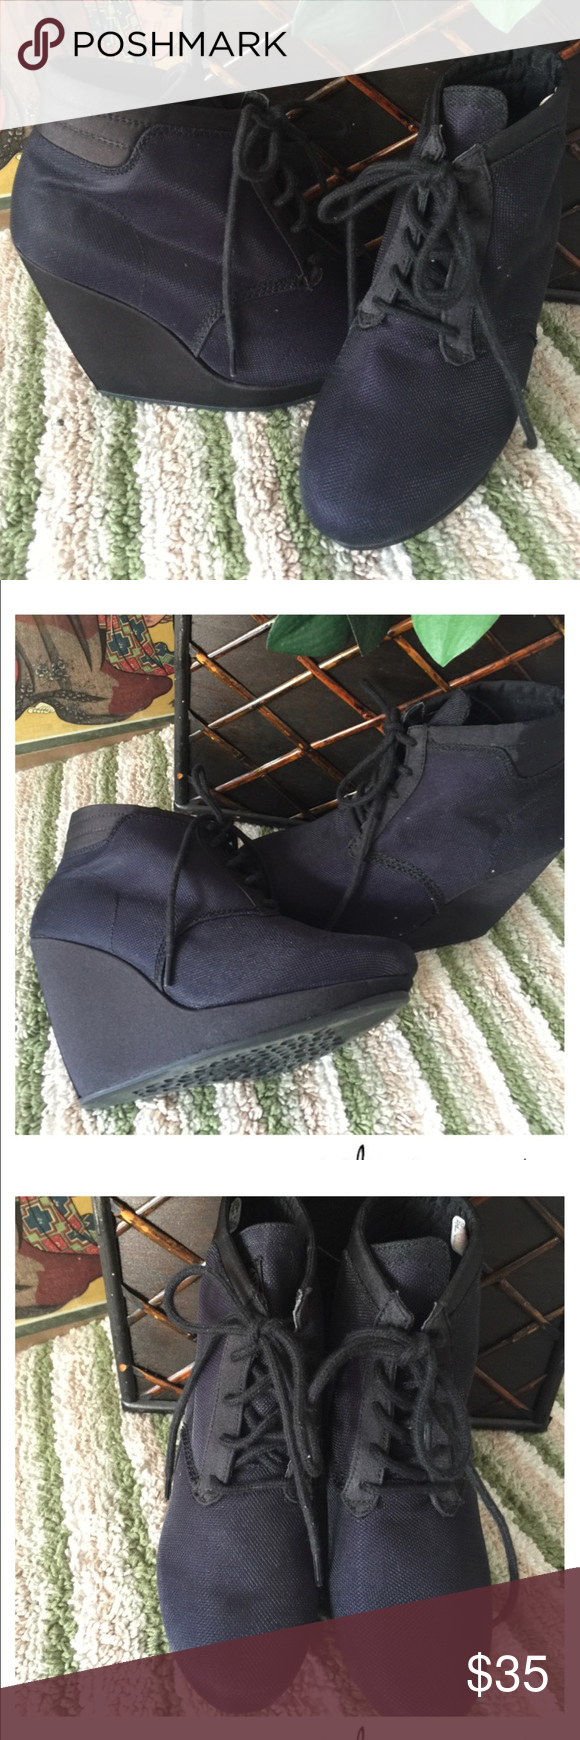 """Adidas Dark Blue Platform Wedge Lace Up Sneaker 🌺Big sale on bundles🌺 🌻2 items 15% off  🌻3 items 25% off  🌻5 items 40% off   Adidas Dark Blue Platform Wedge Lace Up Fancy Sneaker   Size 6  Platform: 0.75"""" Wedge: 4""""  New without box Adidas Shoes Wedges"""